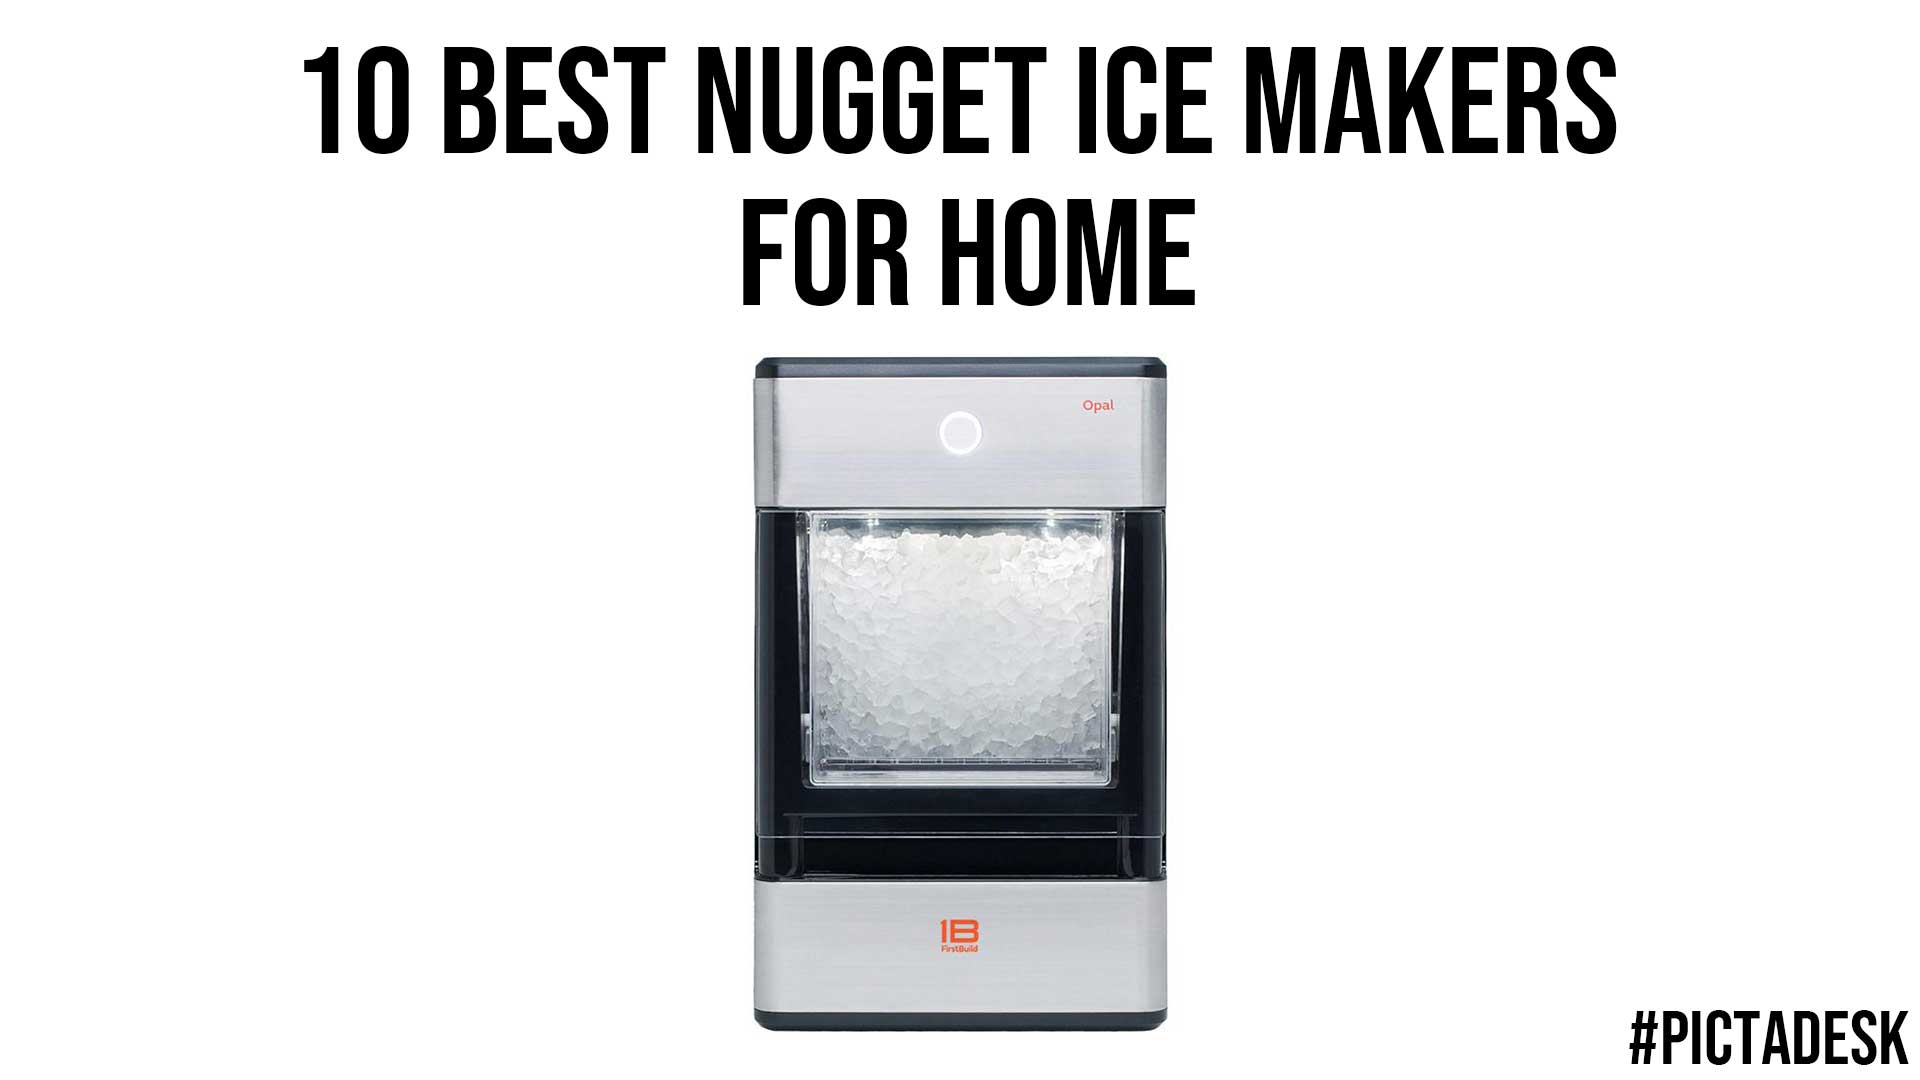 10 Best Nugget Ice Makers for Home